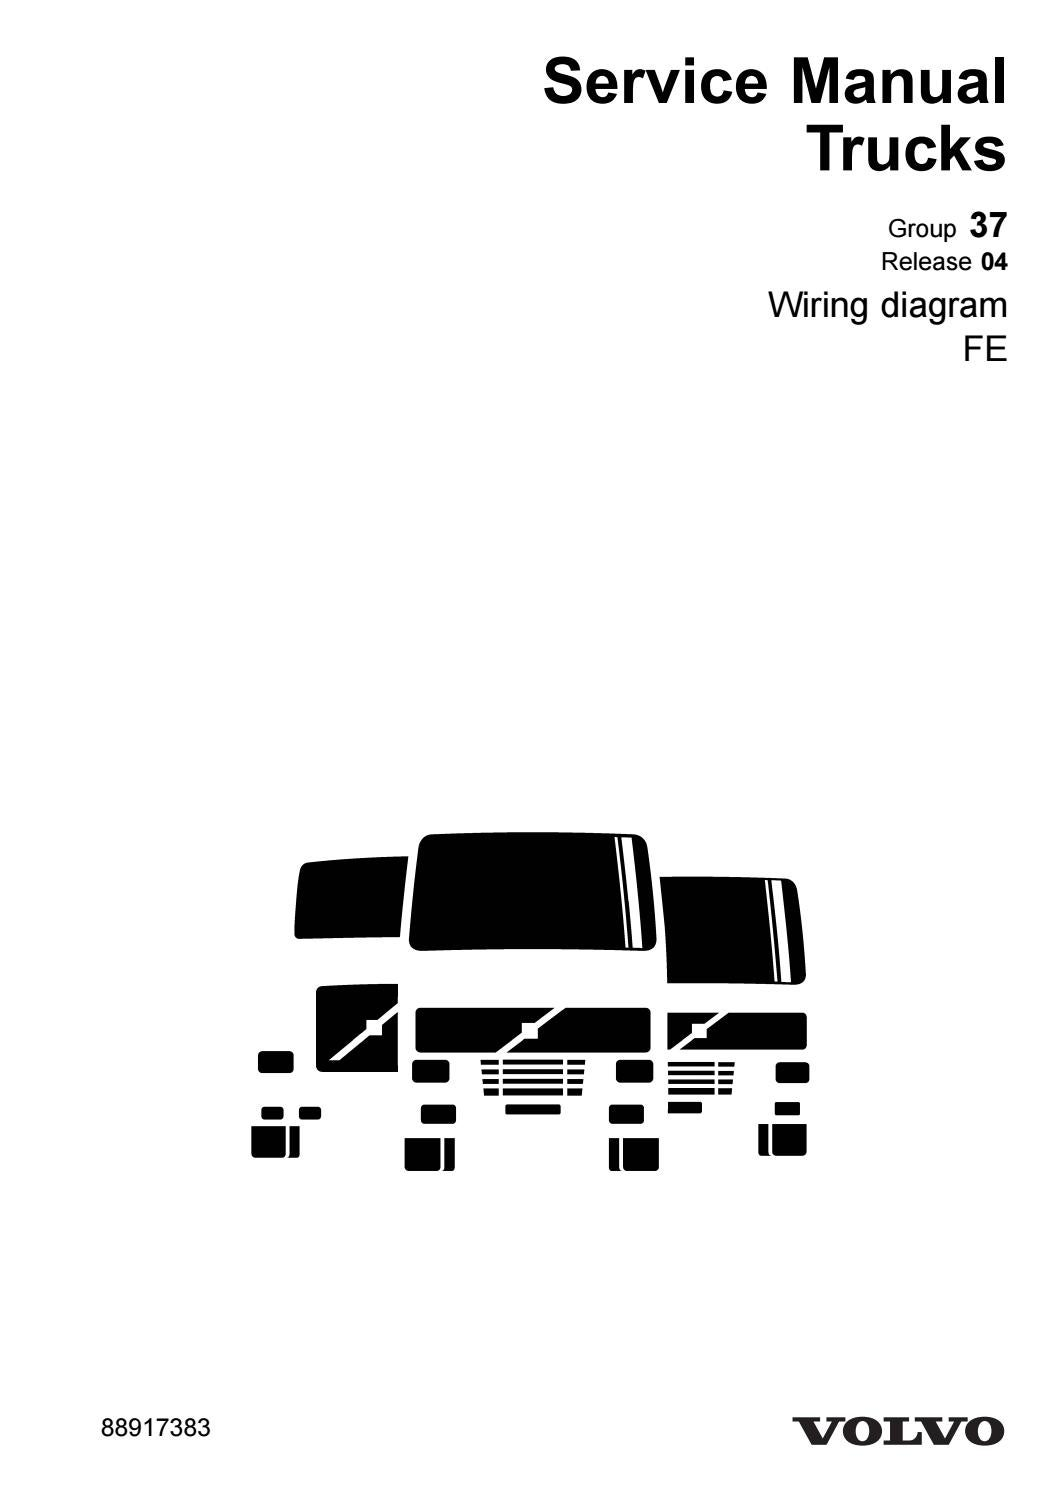 Volvo Fe Truck Wiring Diagram Service Manual Download June 40 by ...